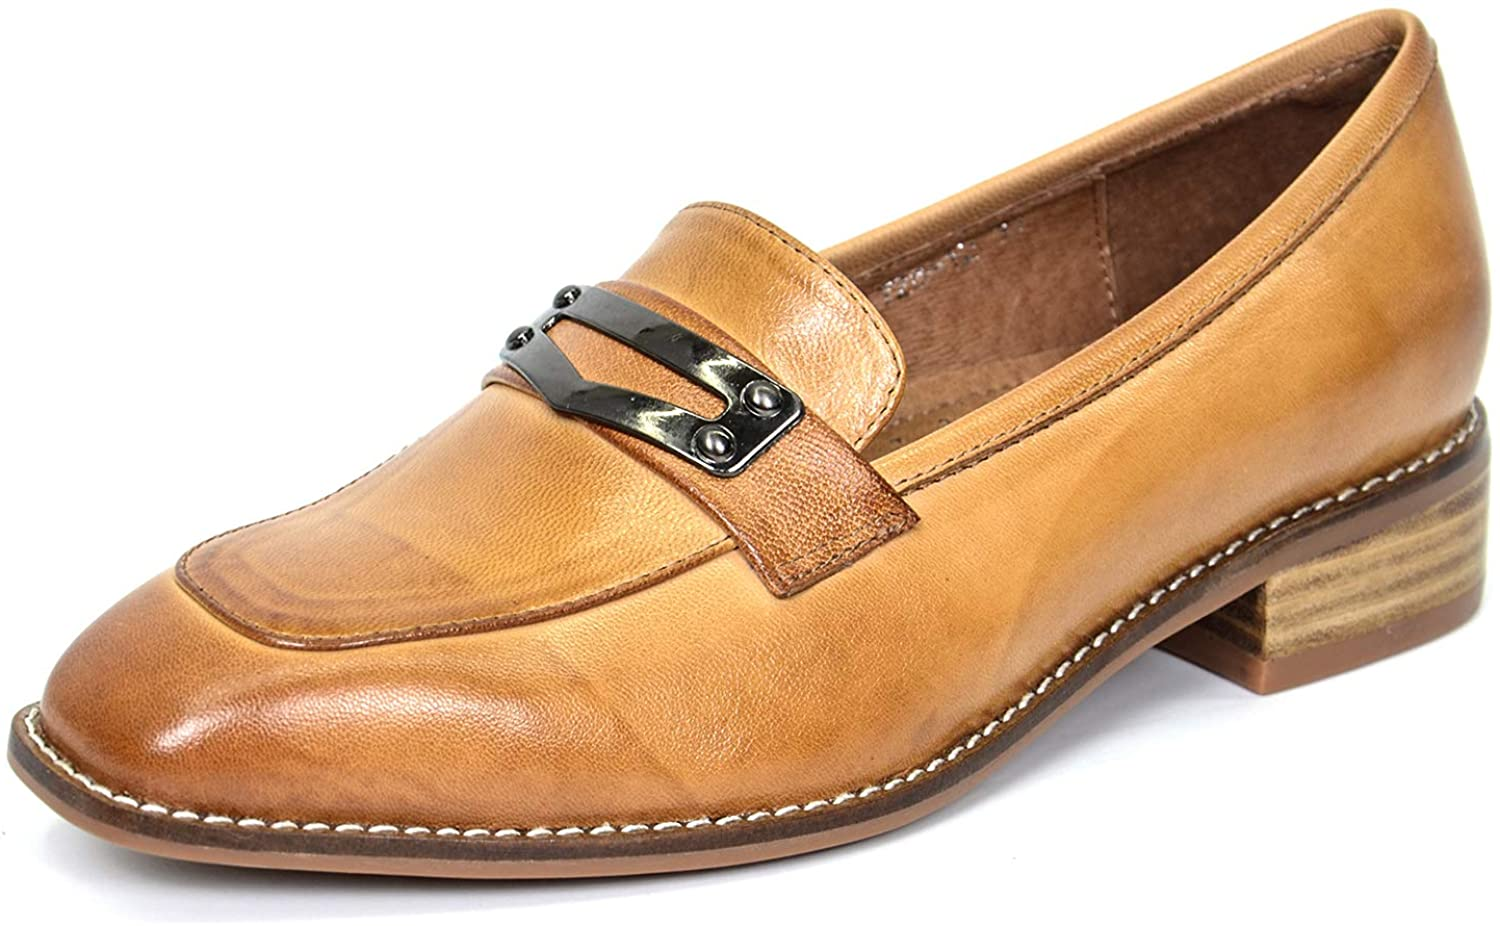 Mona flying Women's Leather Penny Loafer Casual Flat Shoes for Women Ladies Girls